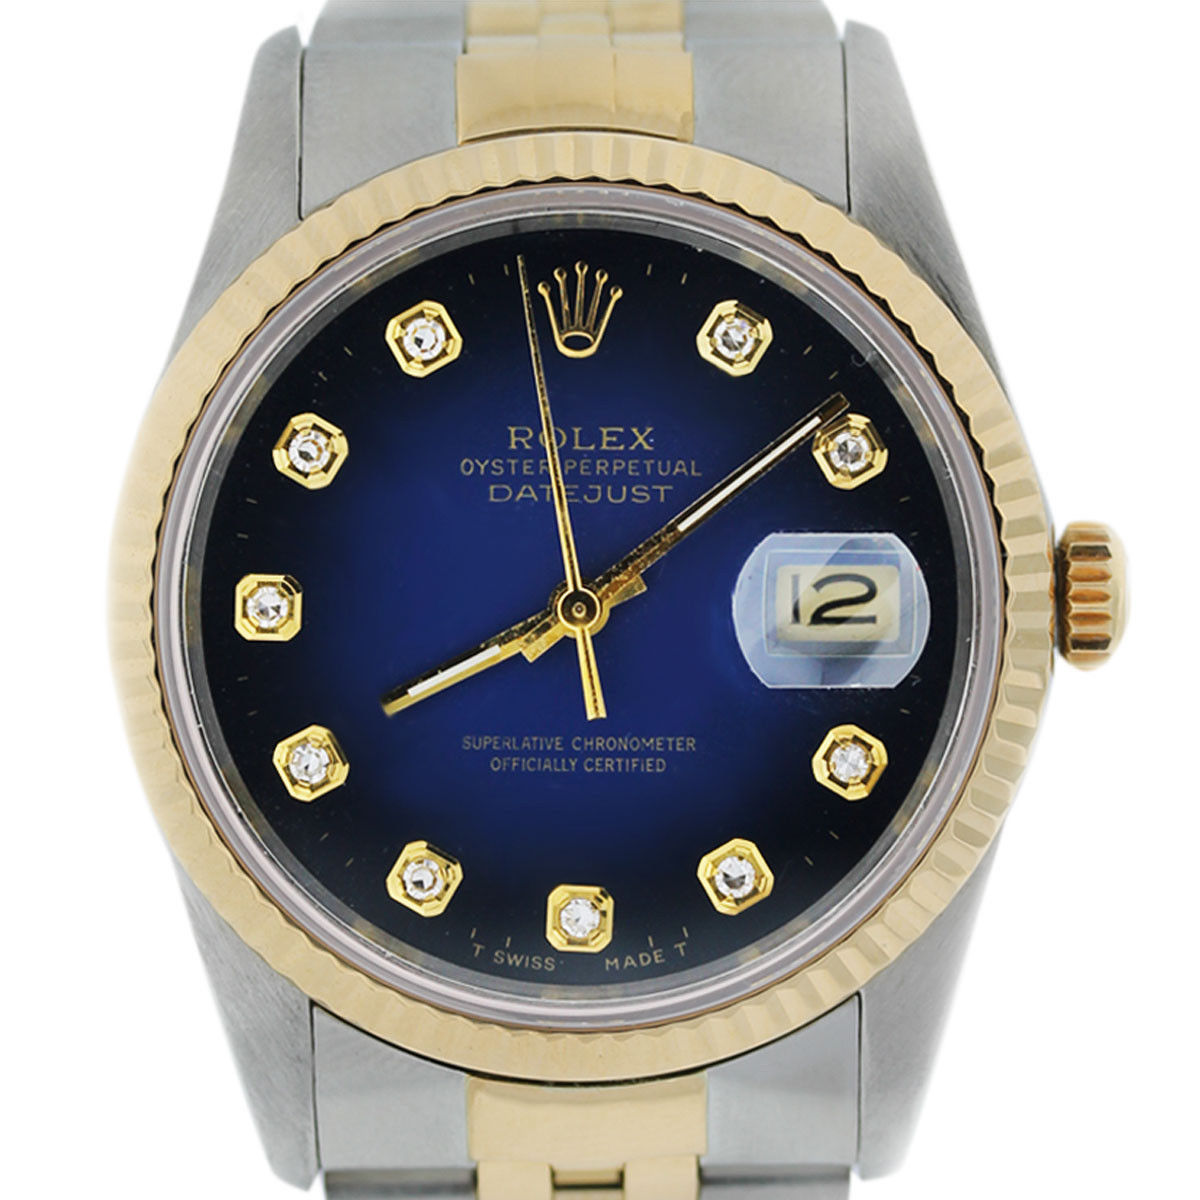 You are viewing this Rolex Datejust 16233 Blue Diamond Dial Jubilee Two Tone Watch!